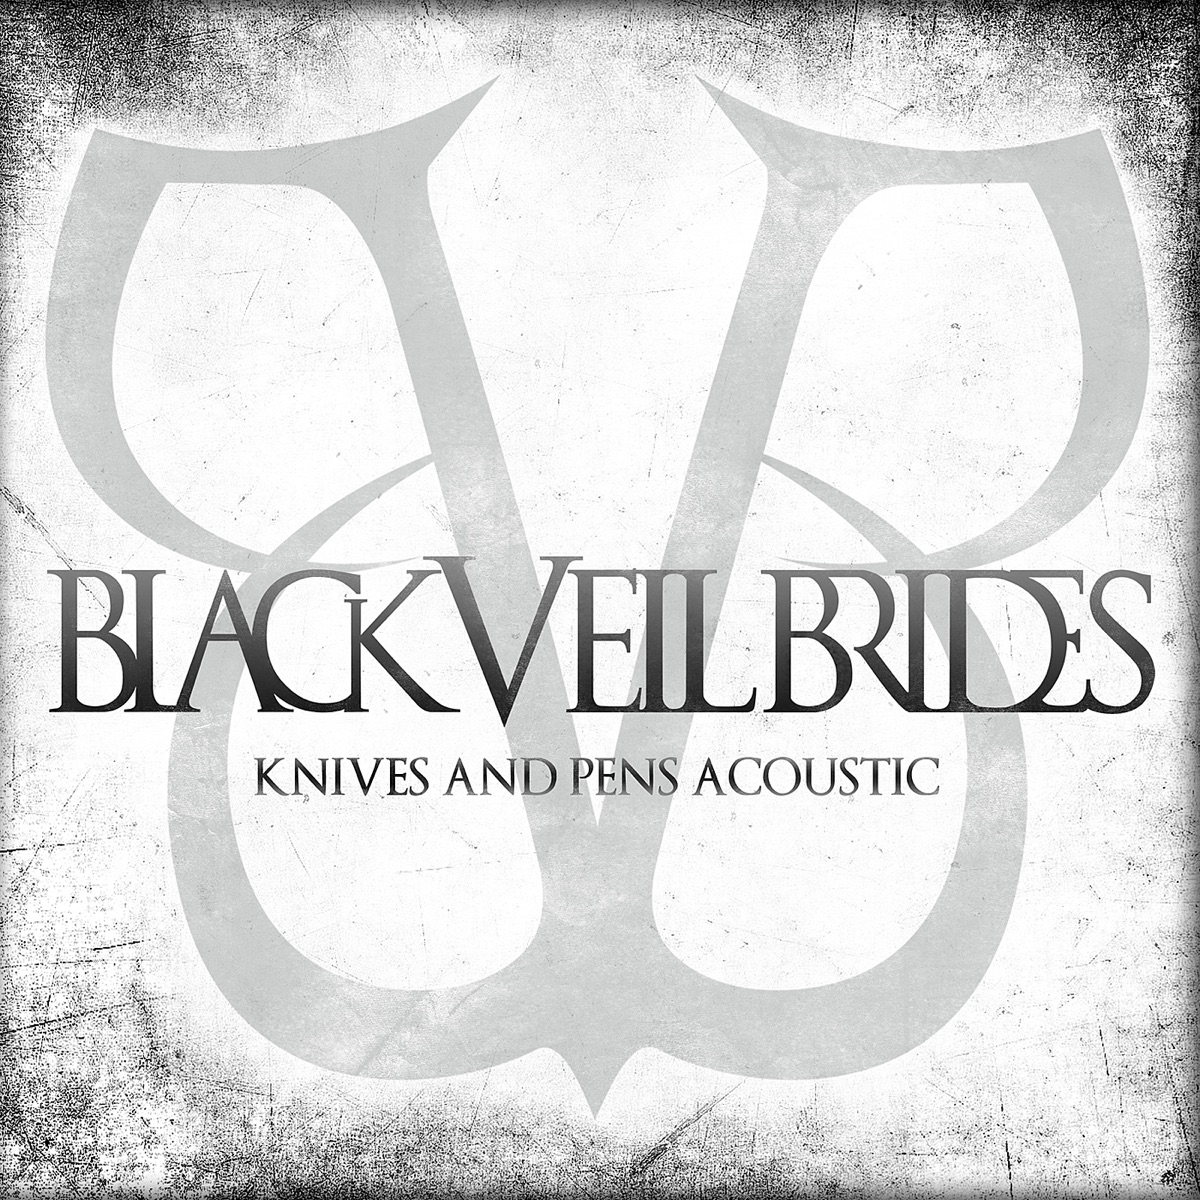 Knives and Pens Acoustic - Single Black Veil Brides CD cover